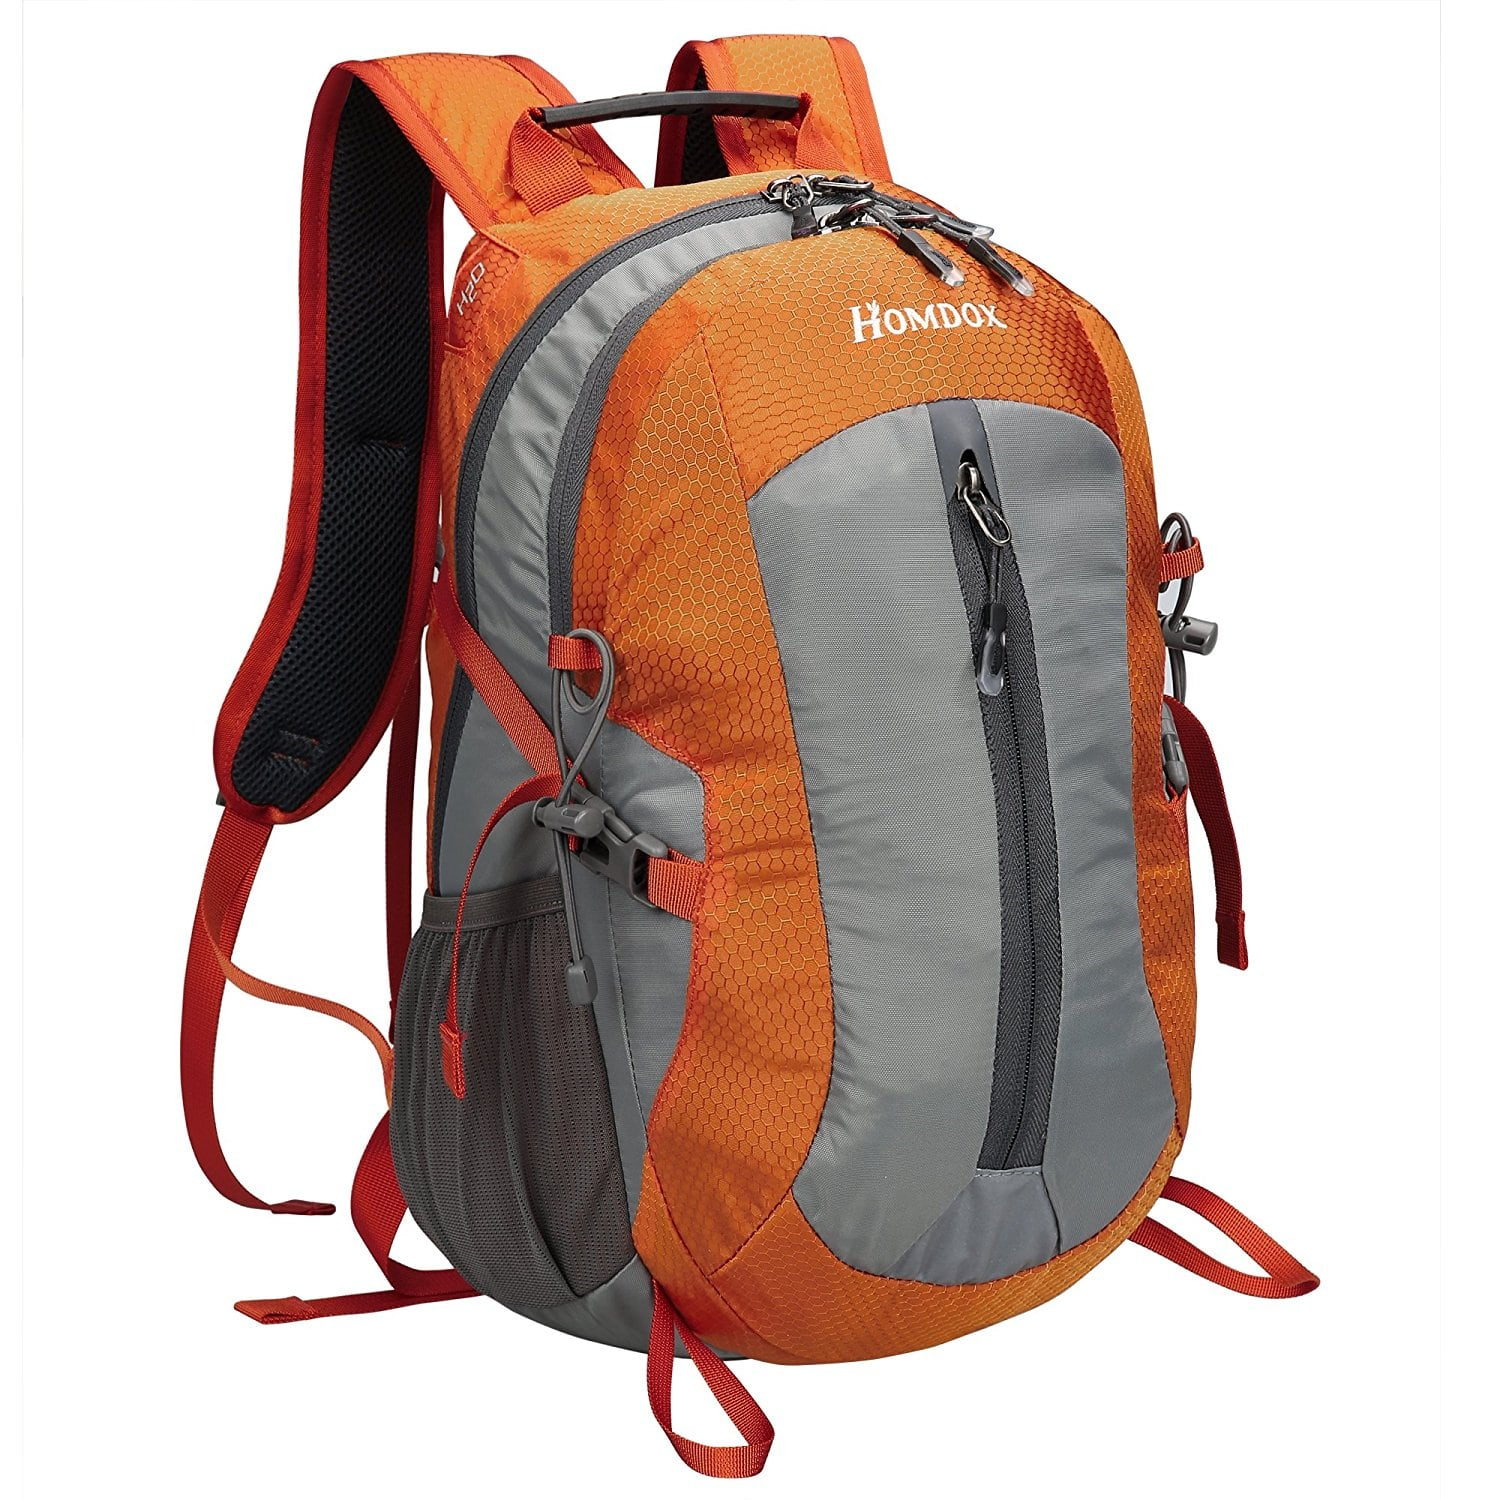 Waterproof Outdoor Backpack - $15.94 w/Code + Free Shipping w/Prime